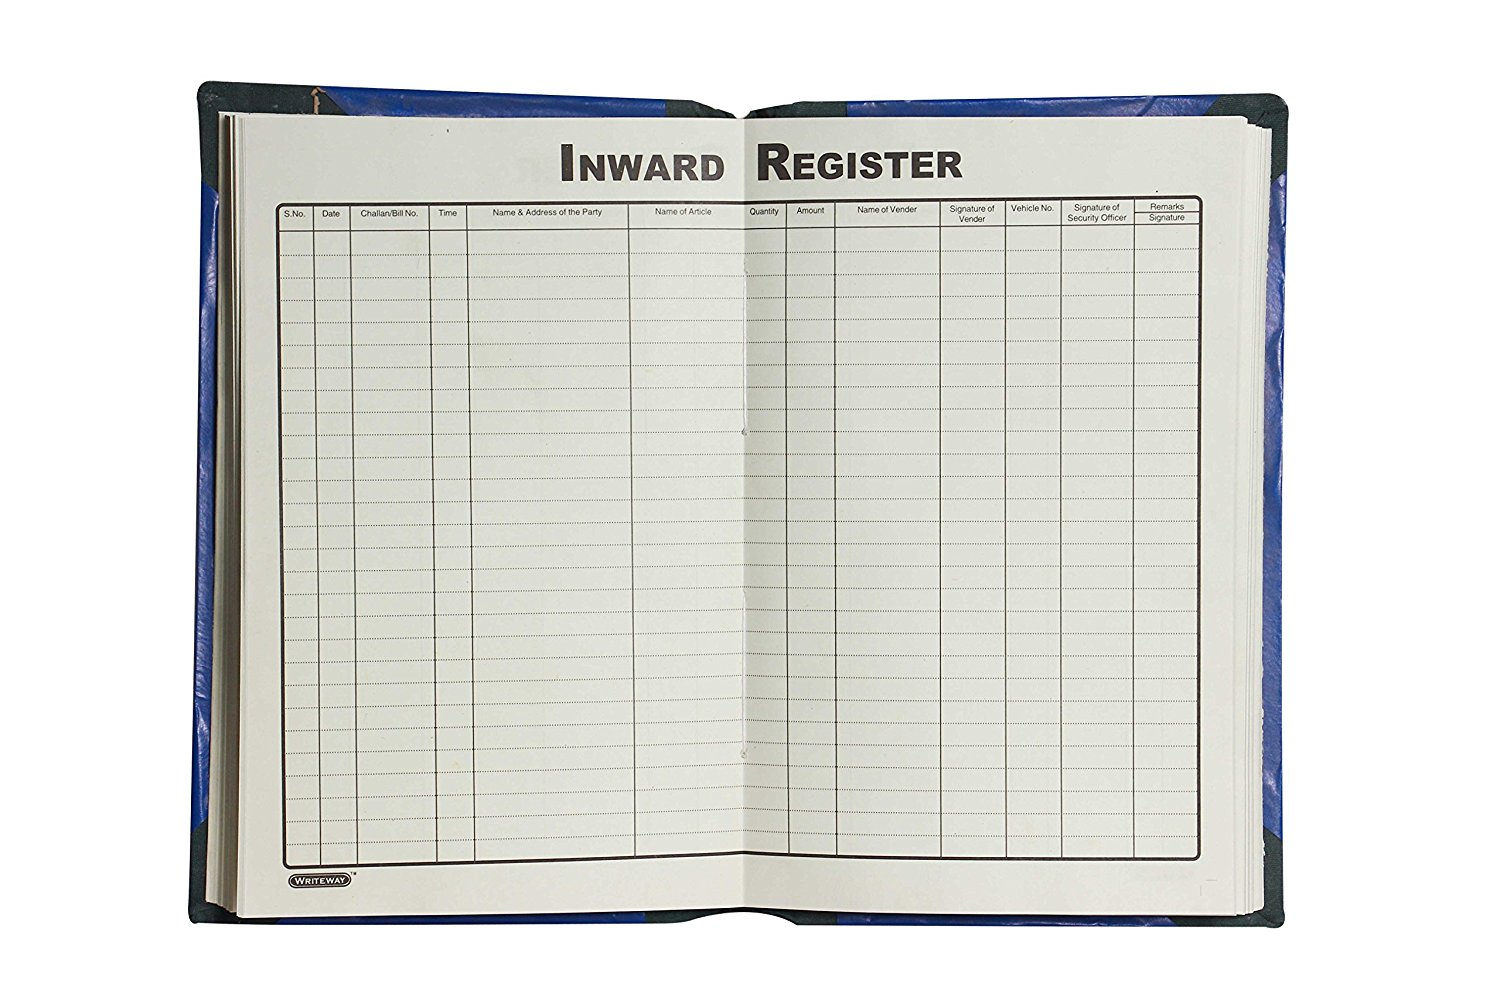 Inward Register, Rexine Binding, 192 Pages 4 Qr, Pack of 4